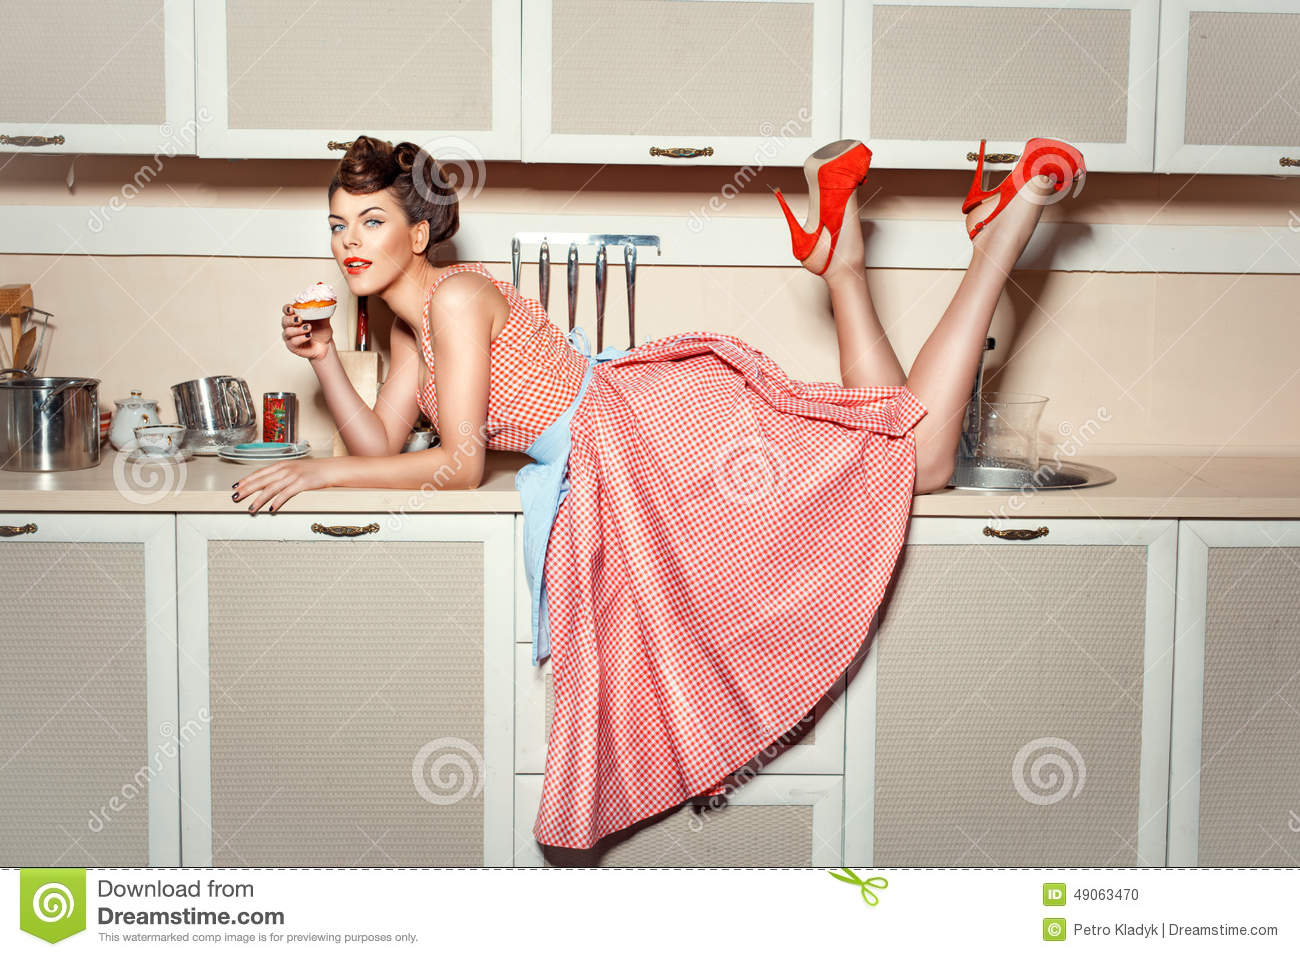 The Girl On The Kitchen Table. Stock Photo - Image: 49063470